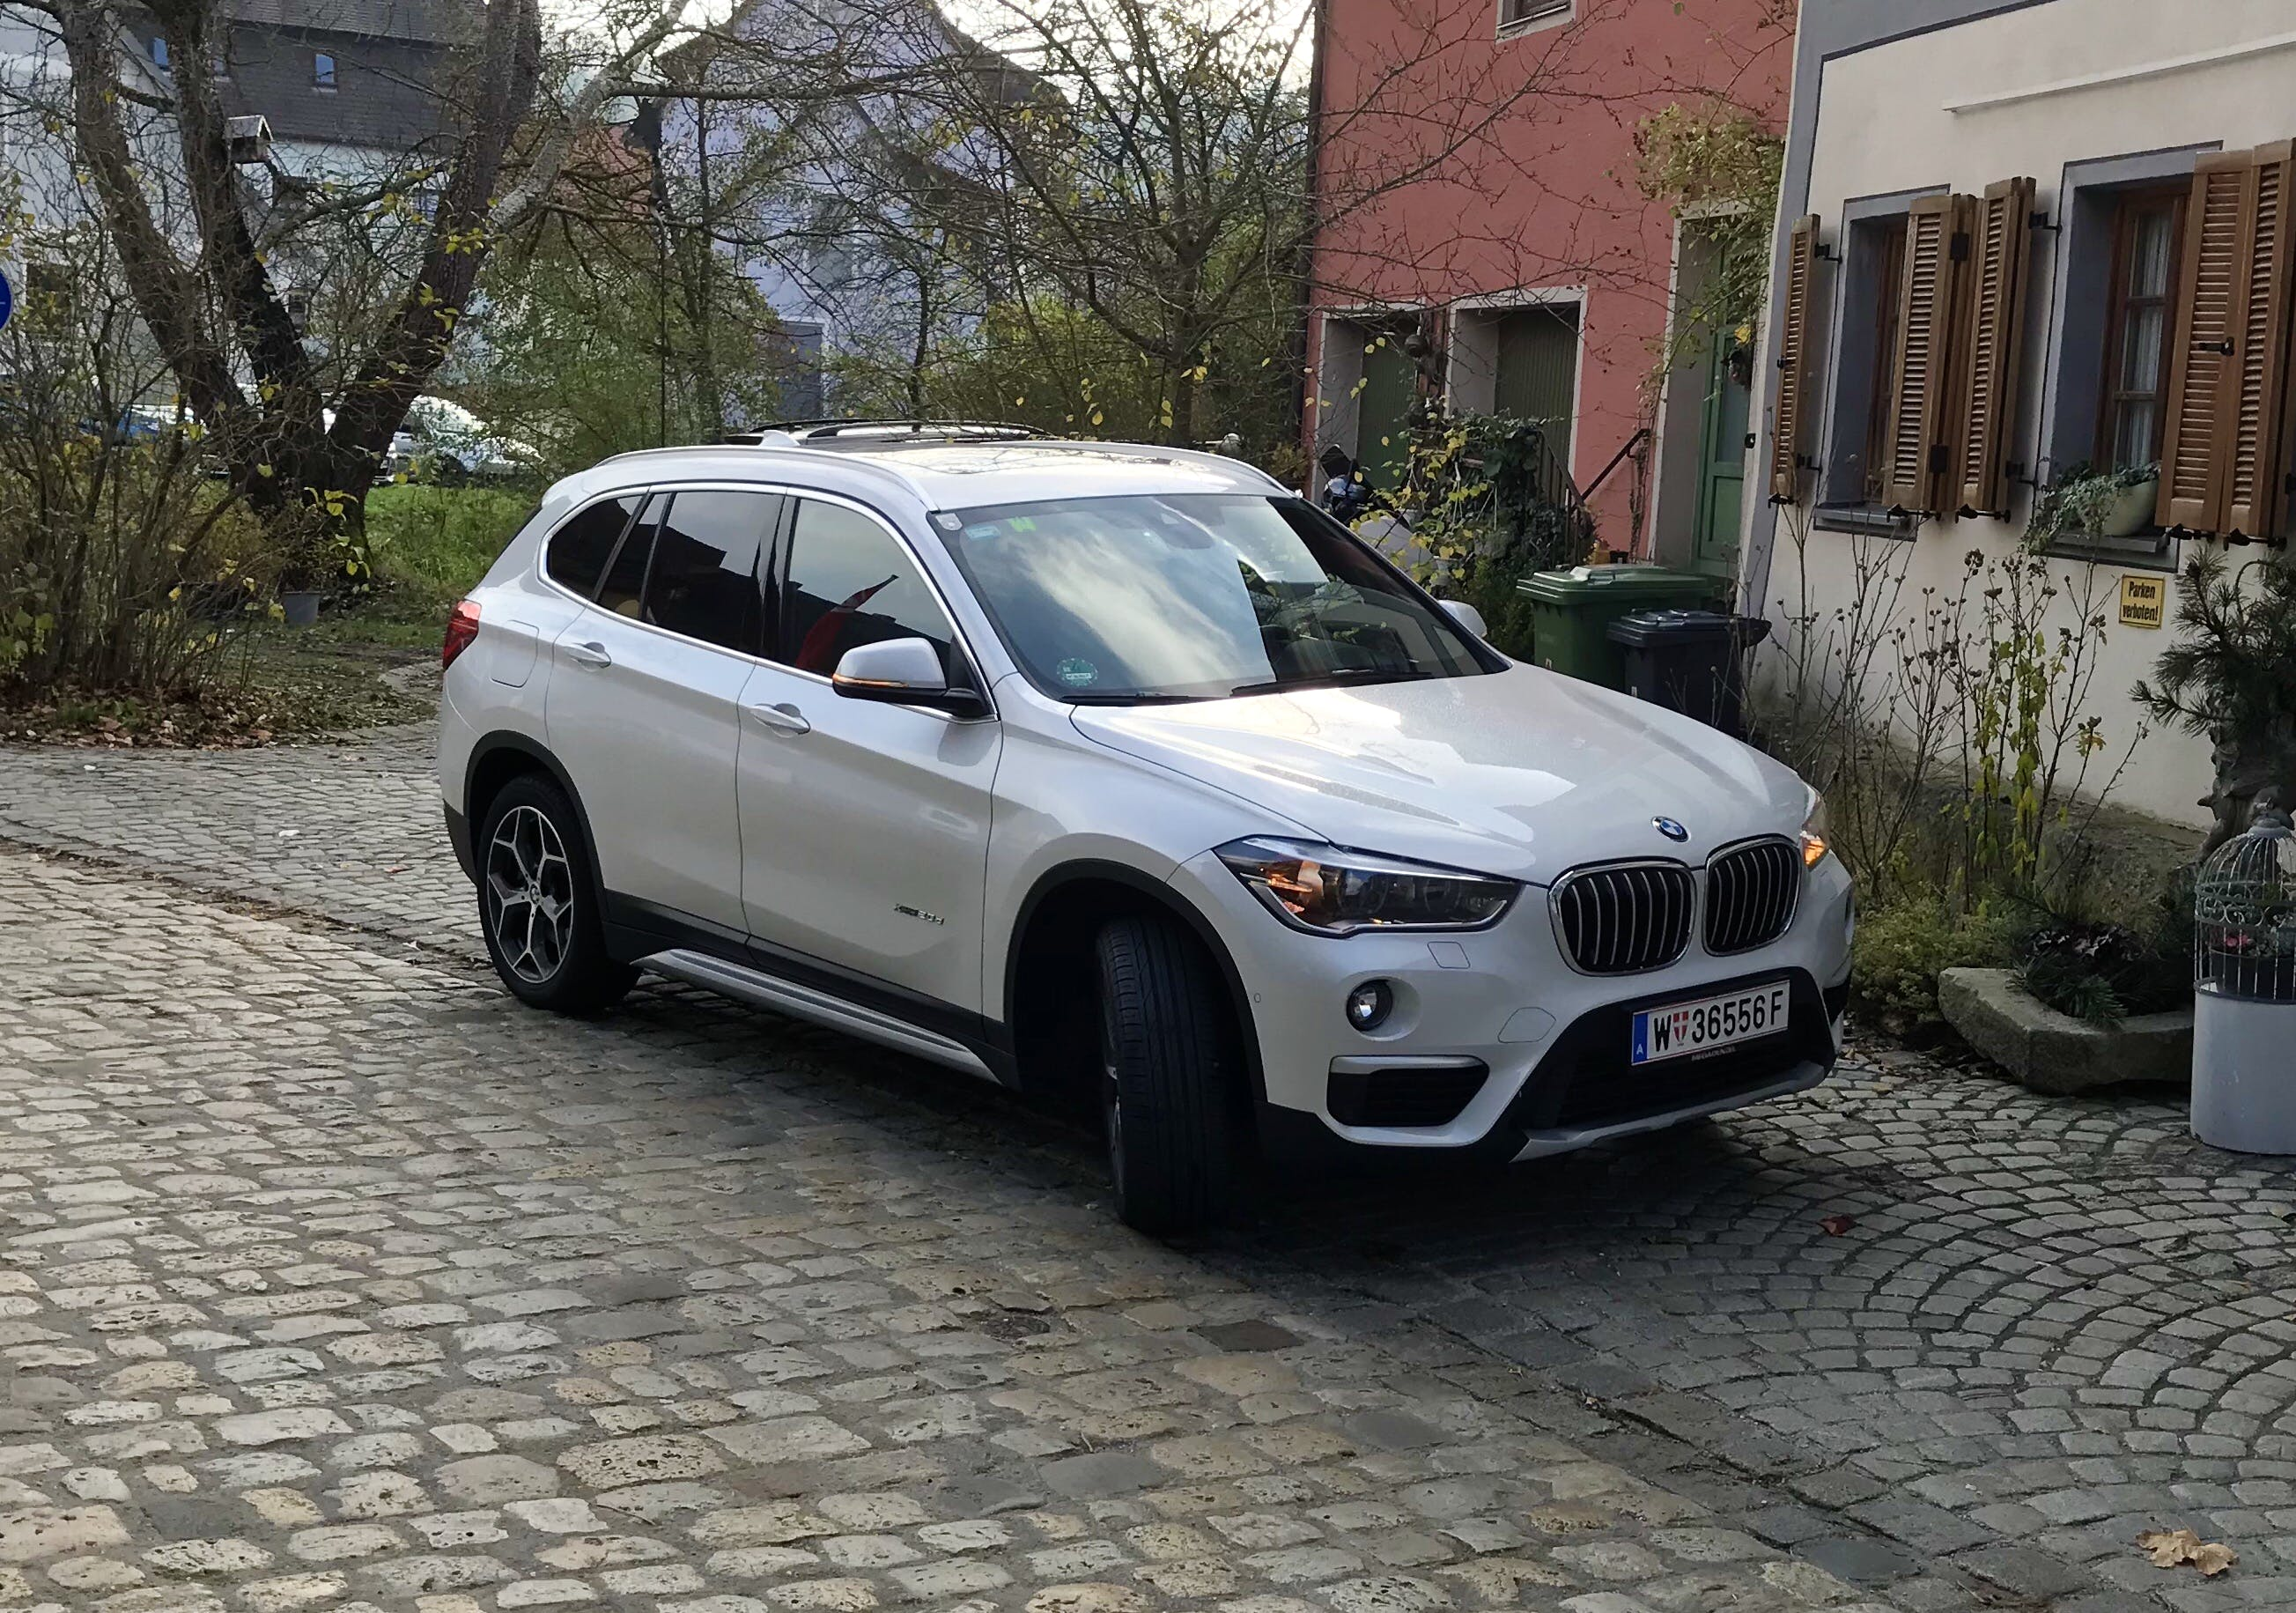 BMW X1 xDrive20d mit CD-Player